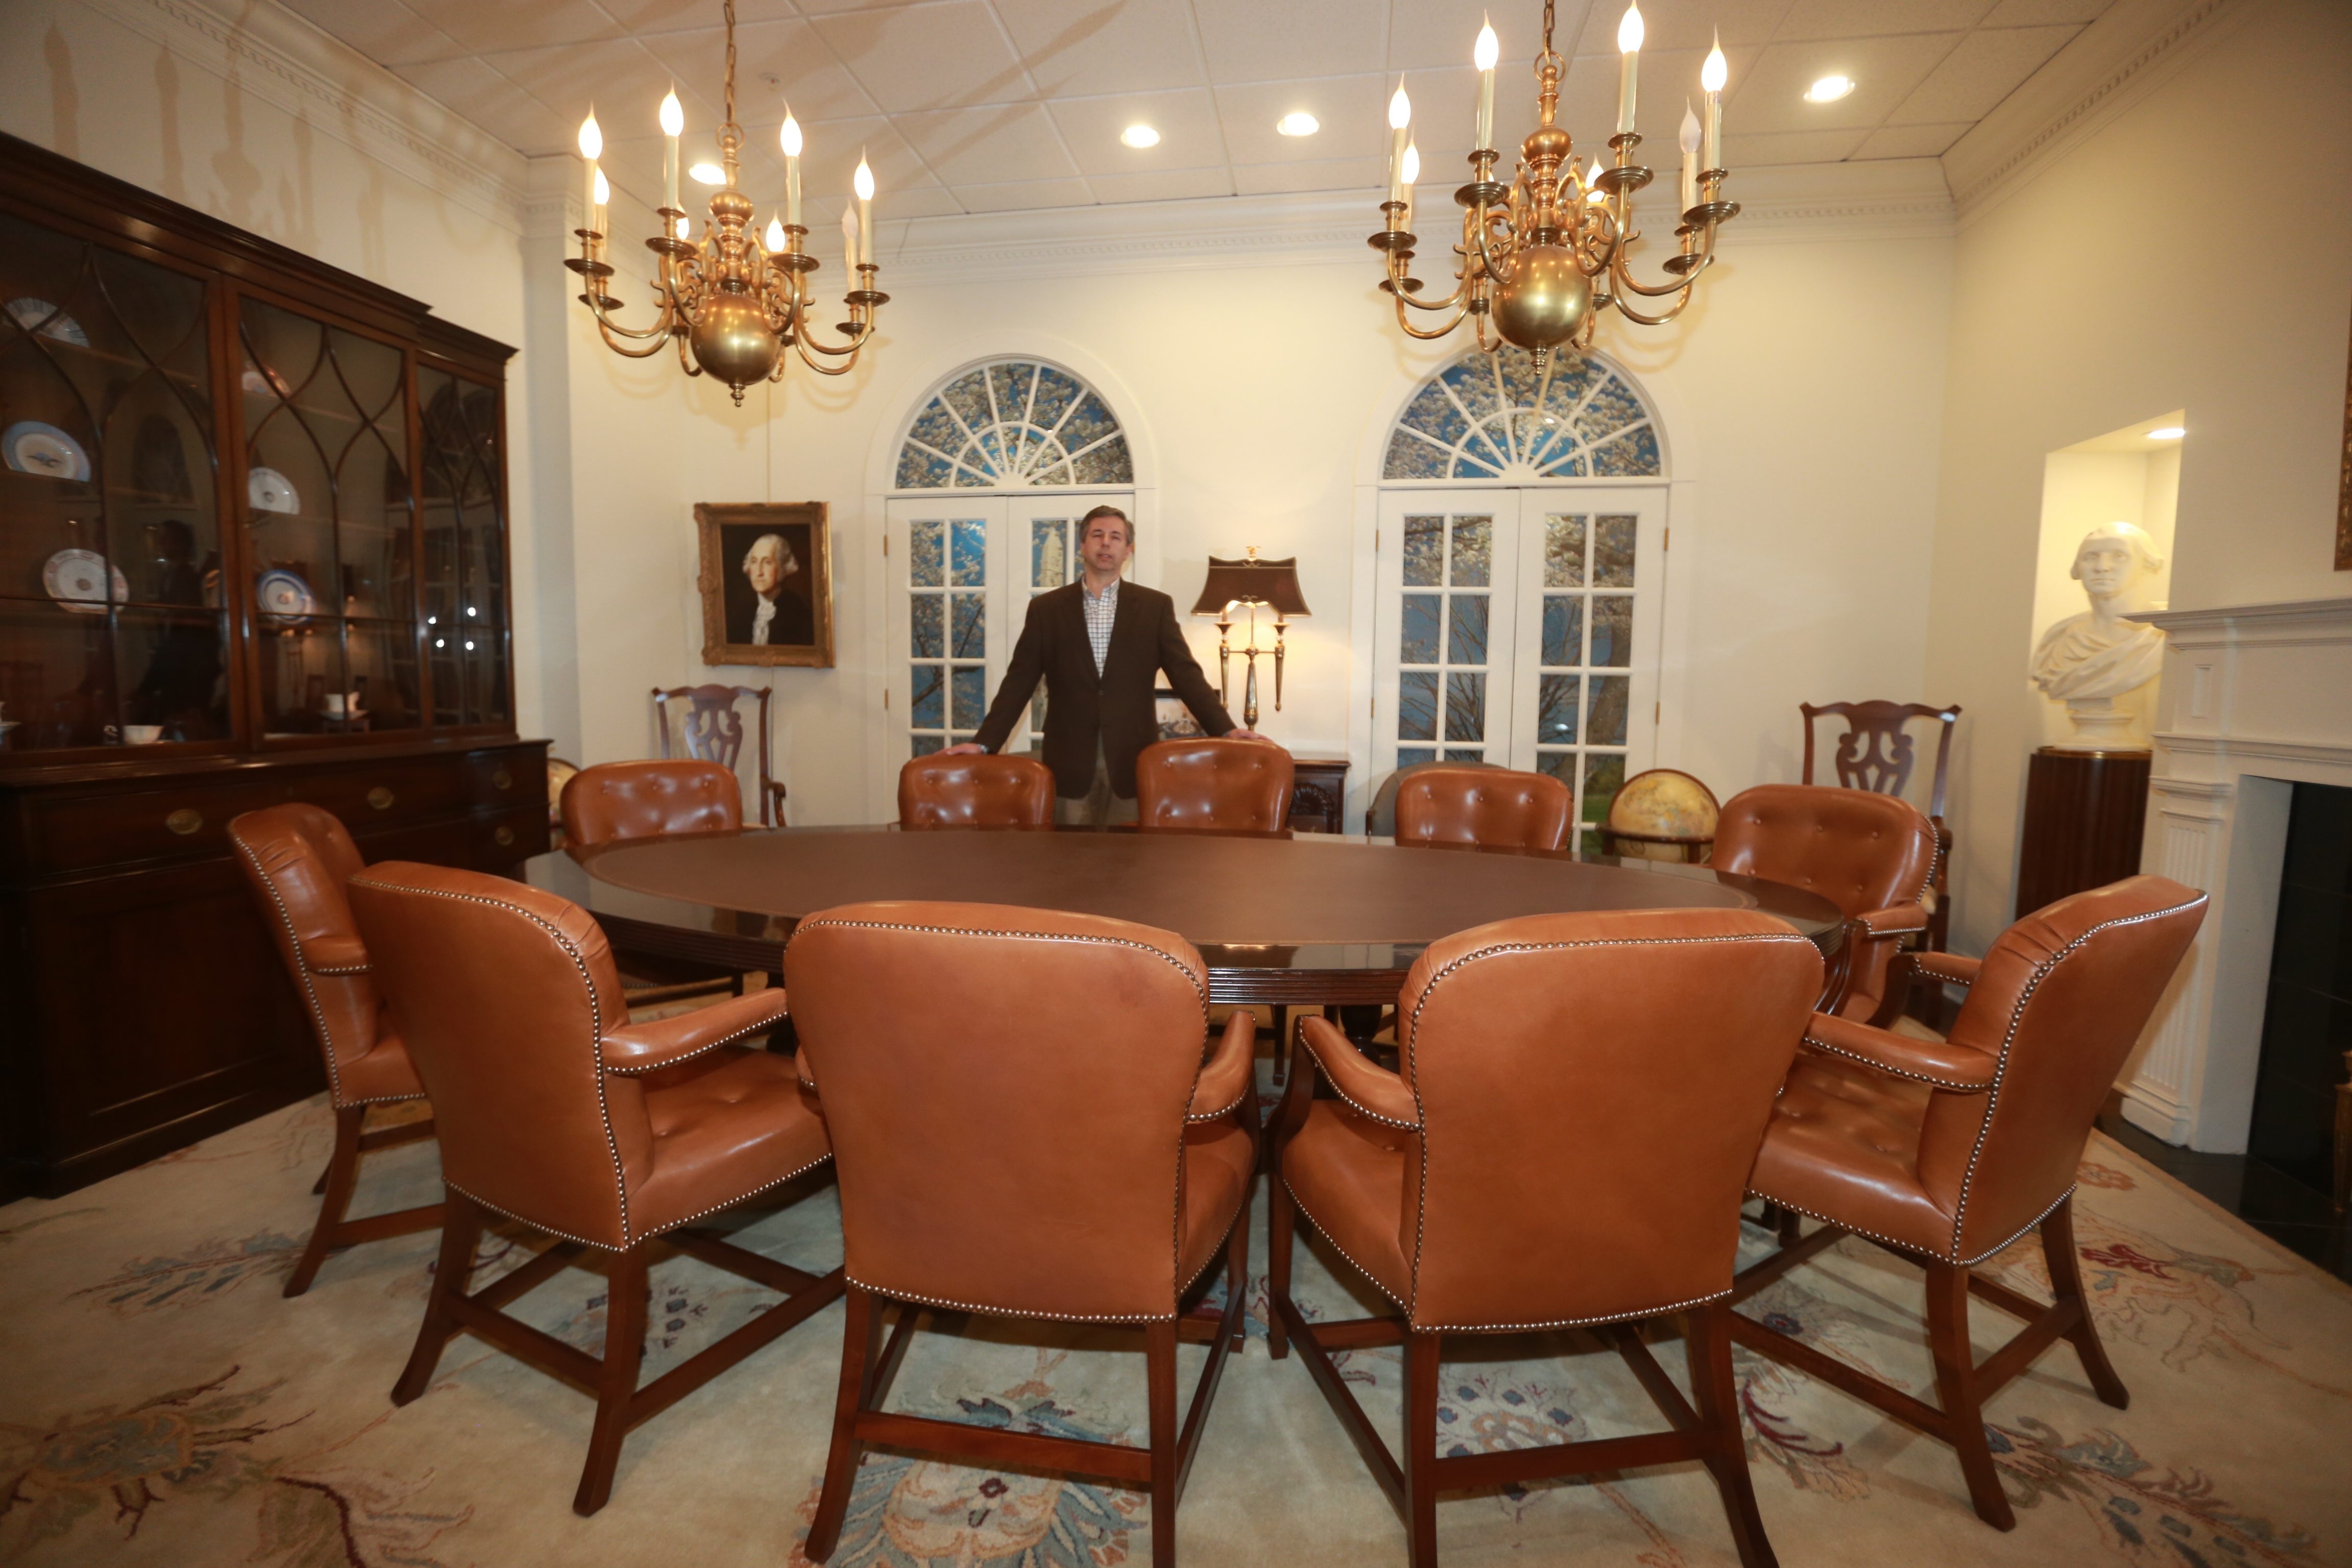 Raymond C. Bialkowski shows off the chairs Kittinger Furniture Co.  manufactured for the Roosevelt Room of the White House.